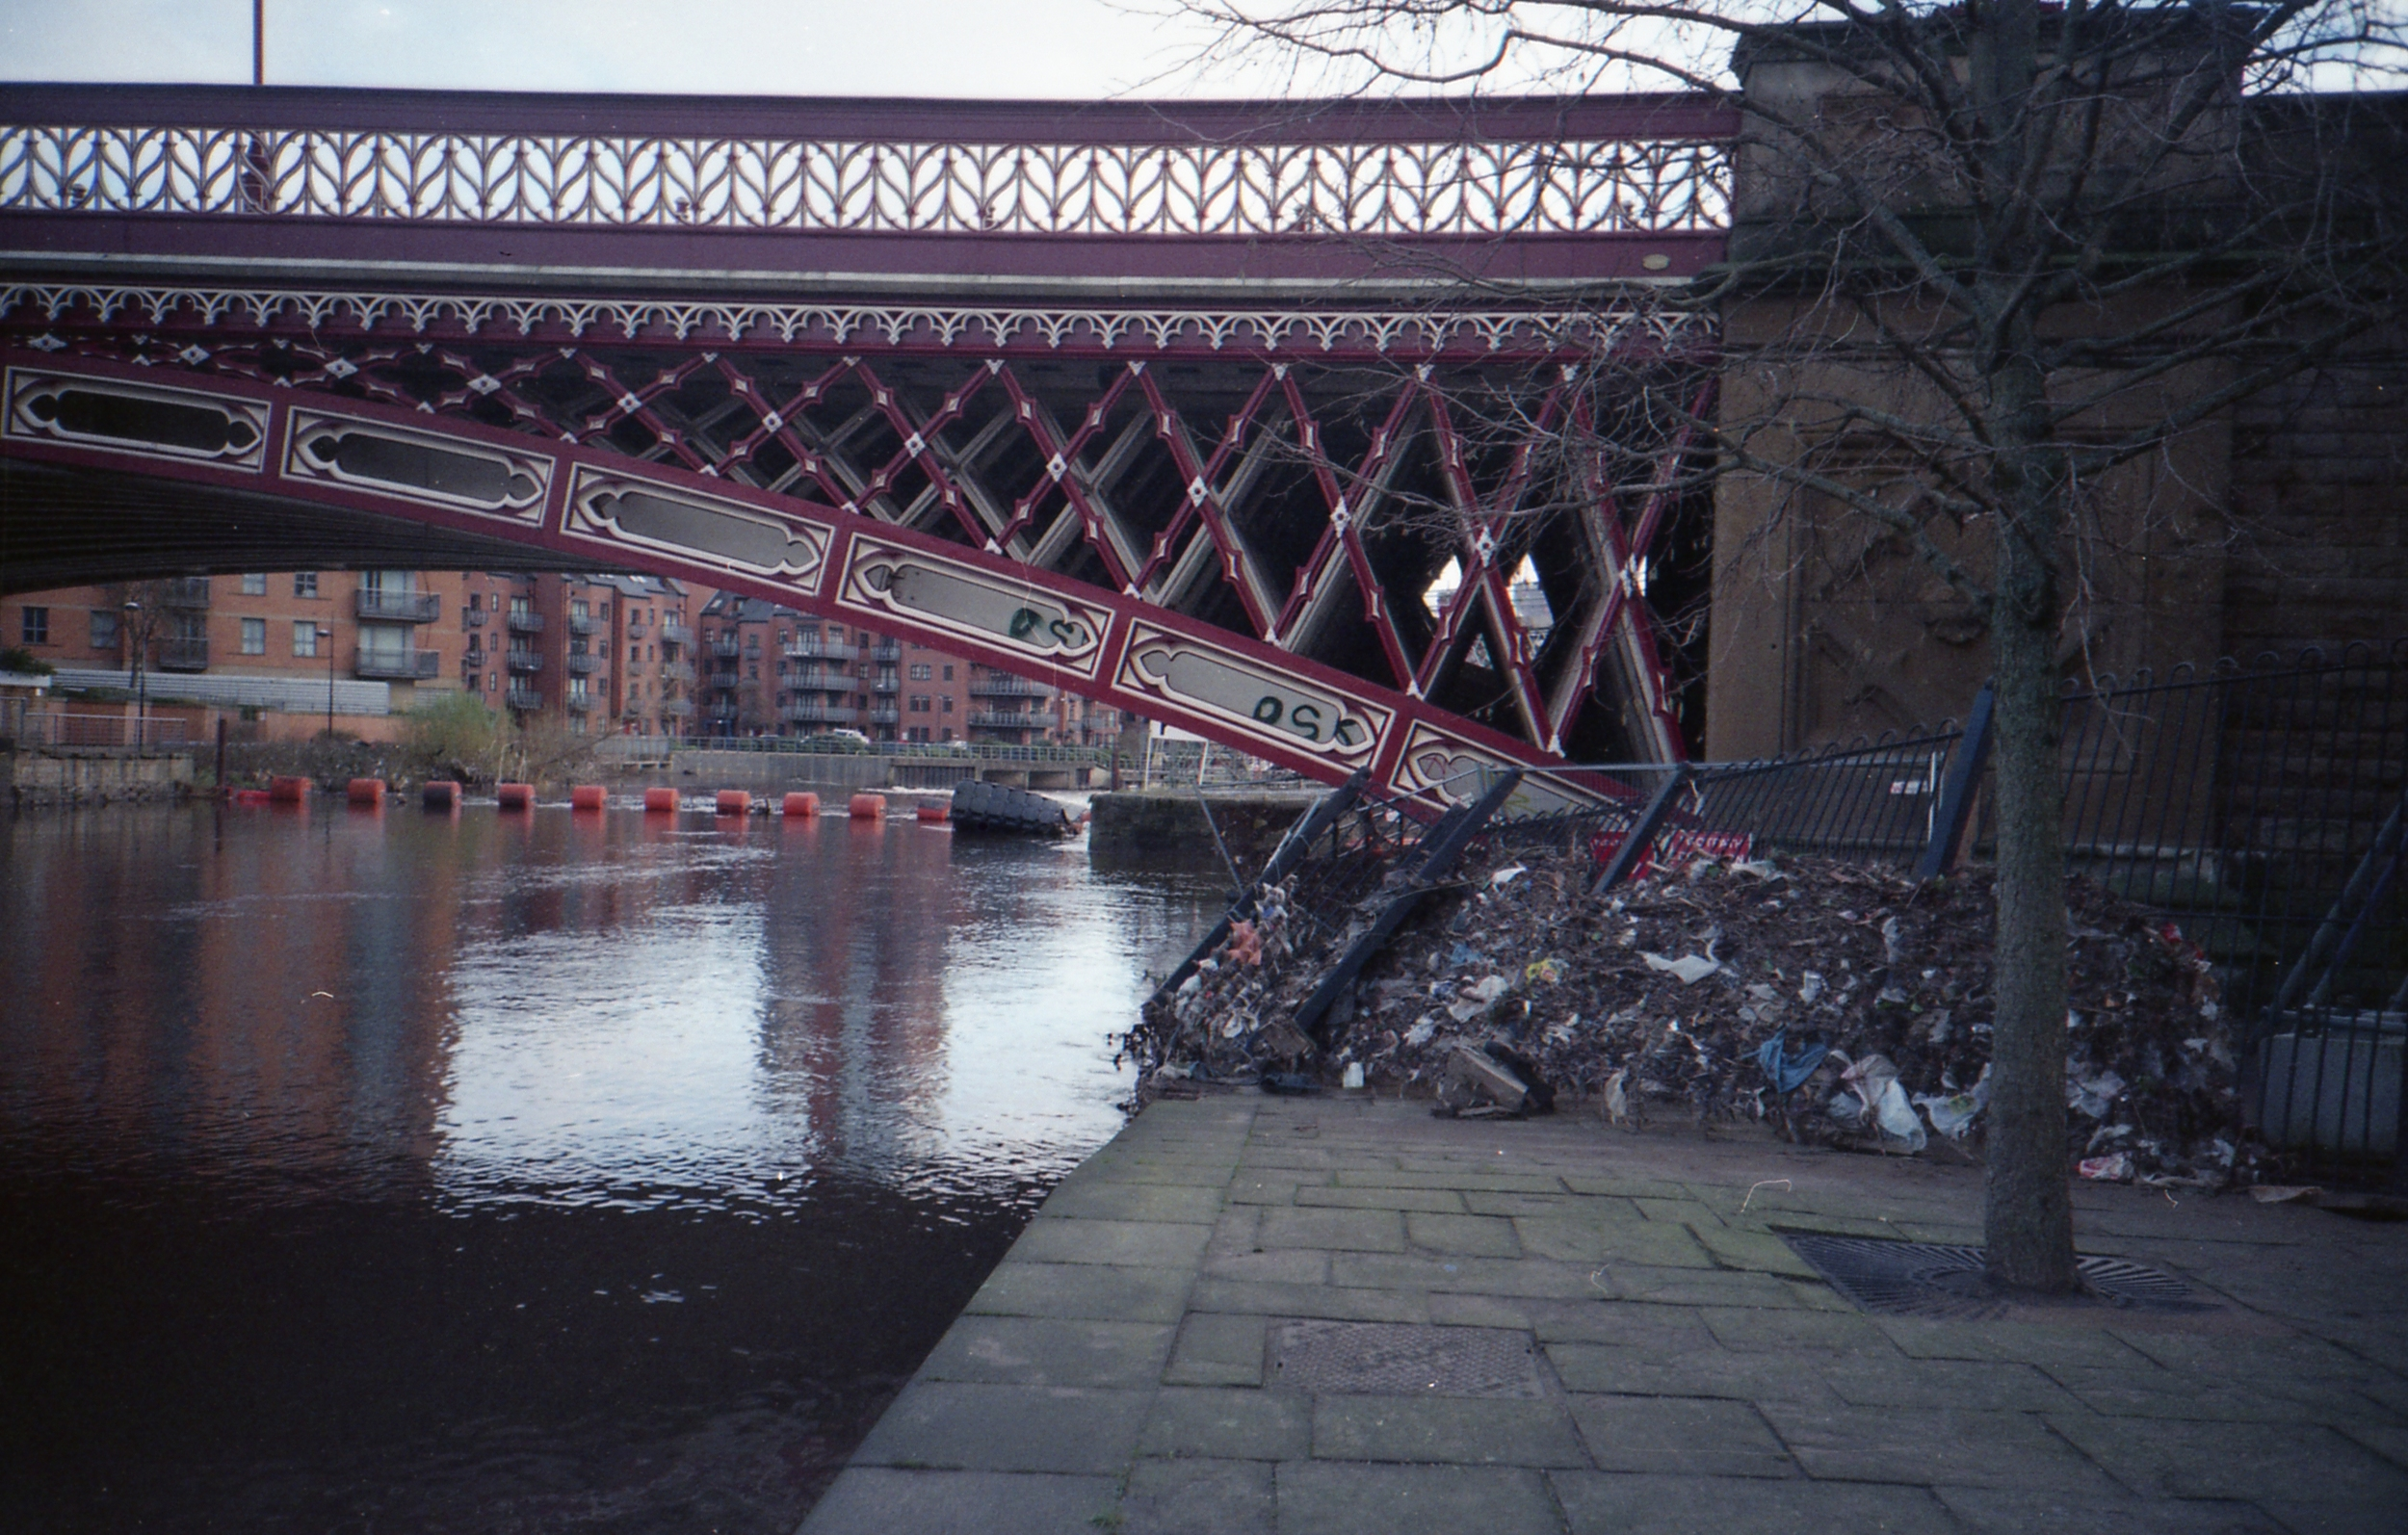 12/366 - Some of the damage from the Boxing Day floods in Leeds along the canal